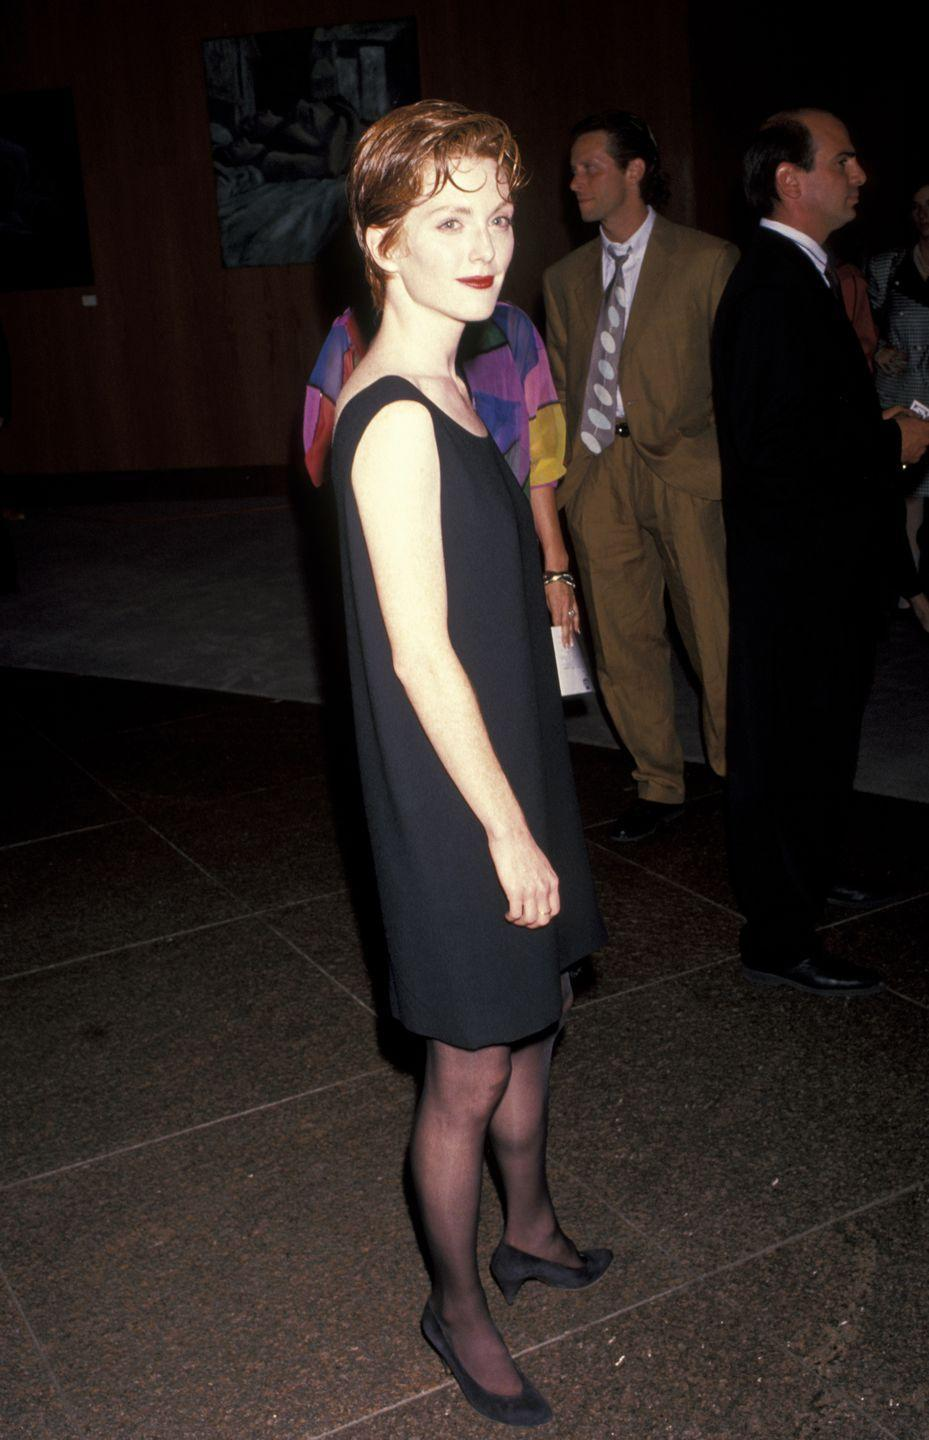 <p>Four years before her breakout role in <em>Nine Months</em>, Julianne Moore walked the red carpet for her TV movie, <em>Cast a Deadly Spell</em>. </p>